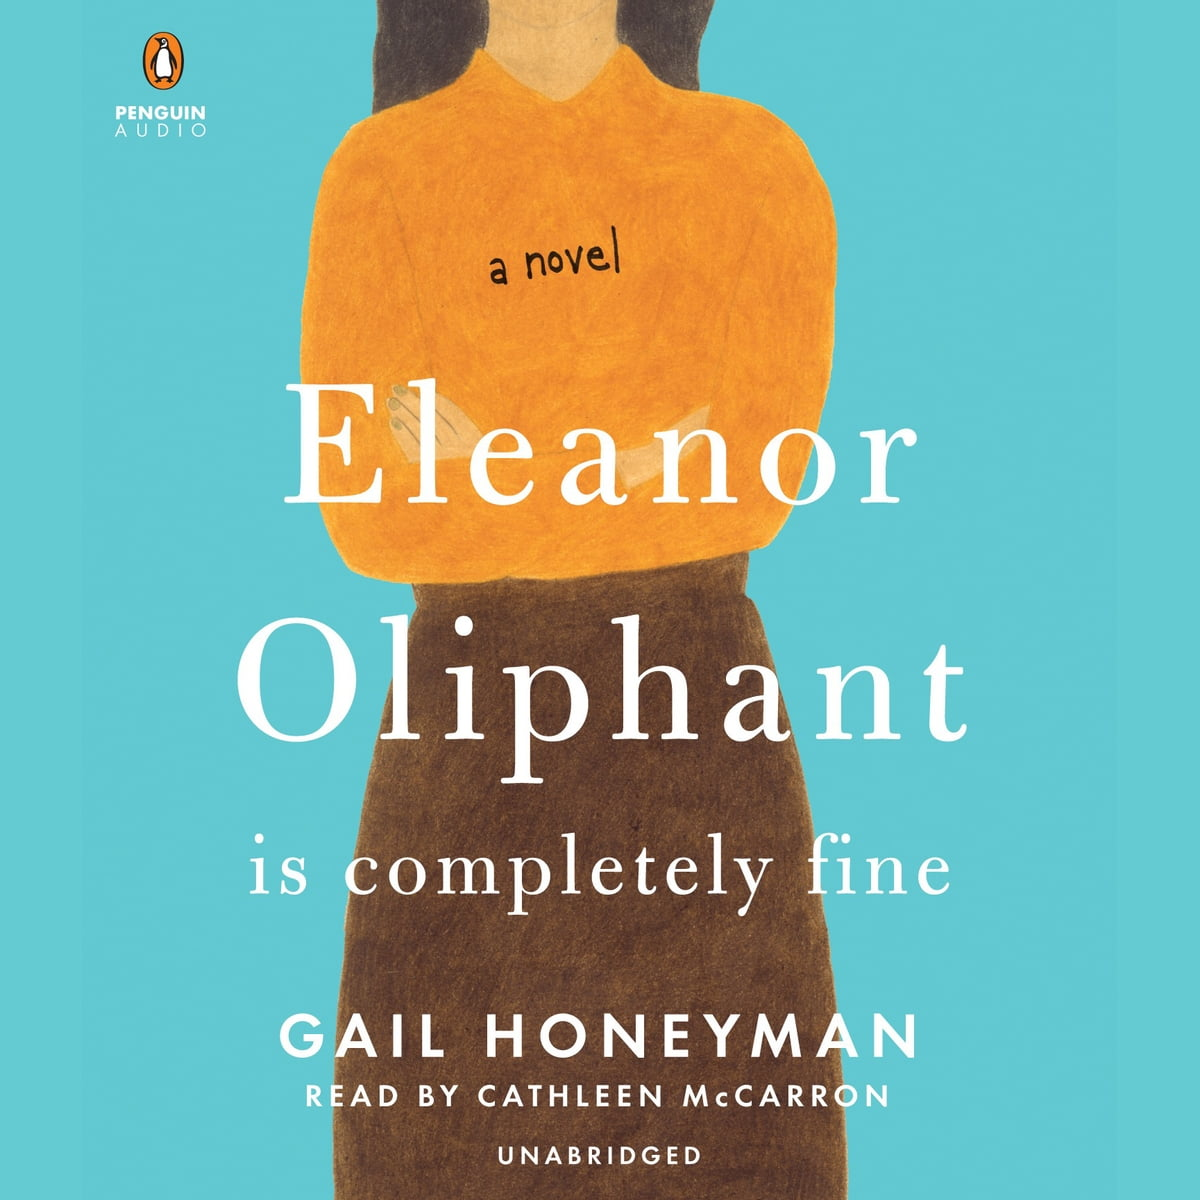 management degree judging a book by its cover the top the design book Original Eleanor Oliphant is Completely Fine Cover via Pamela Dorman Books.